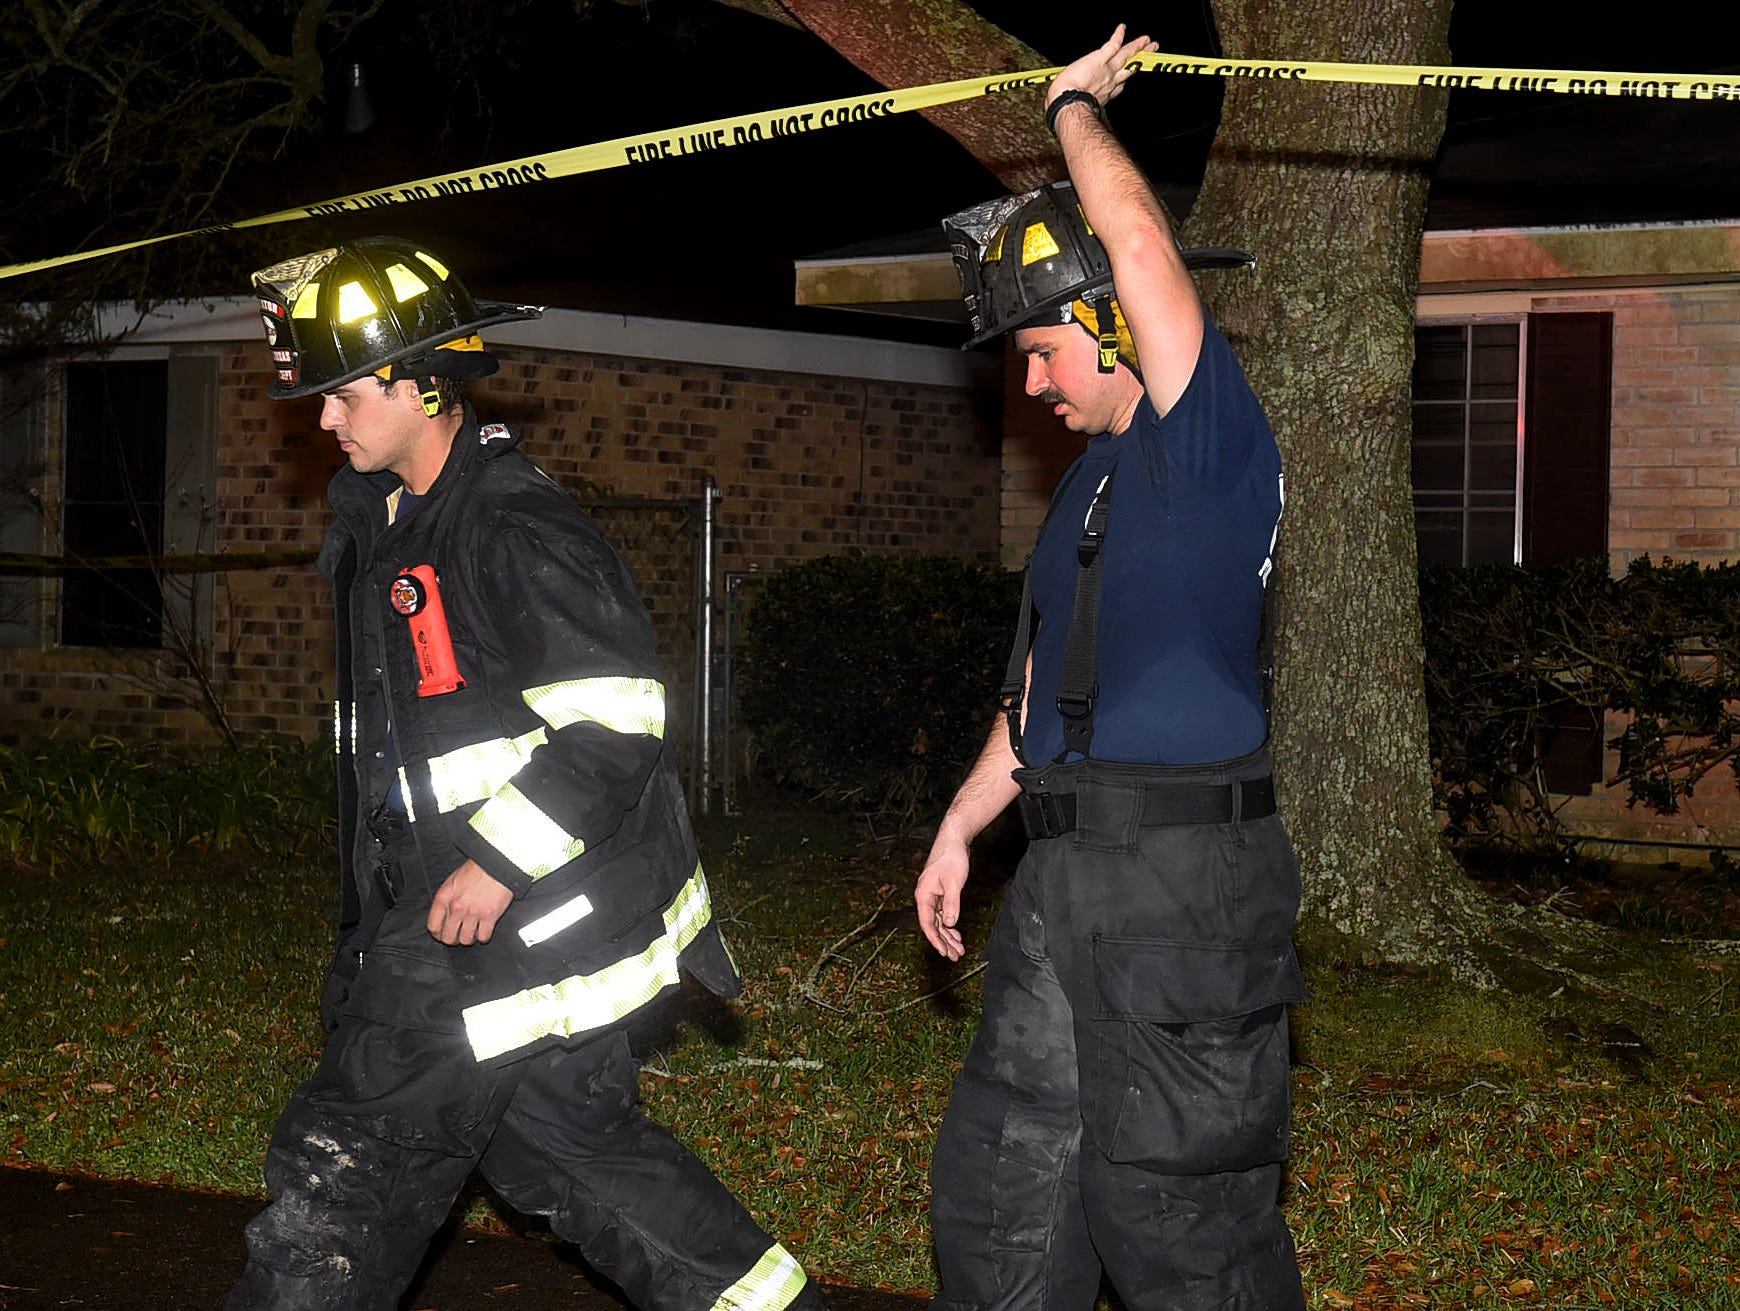 Firefighters and first responders at the scene of a Jake Drive house fire that claimed the life of one person early Sunday.